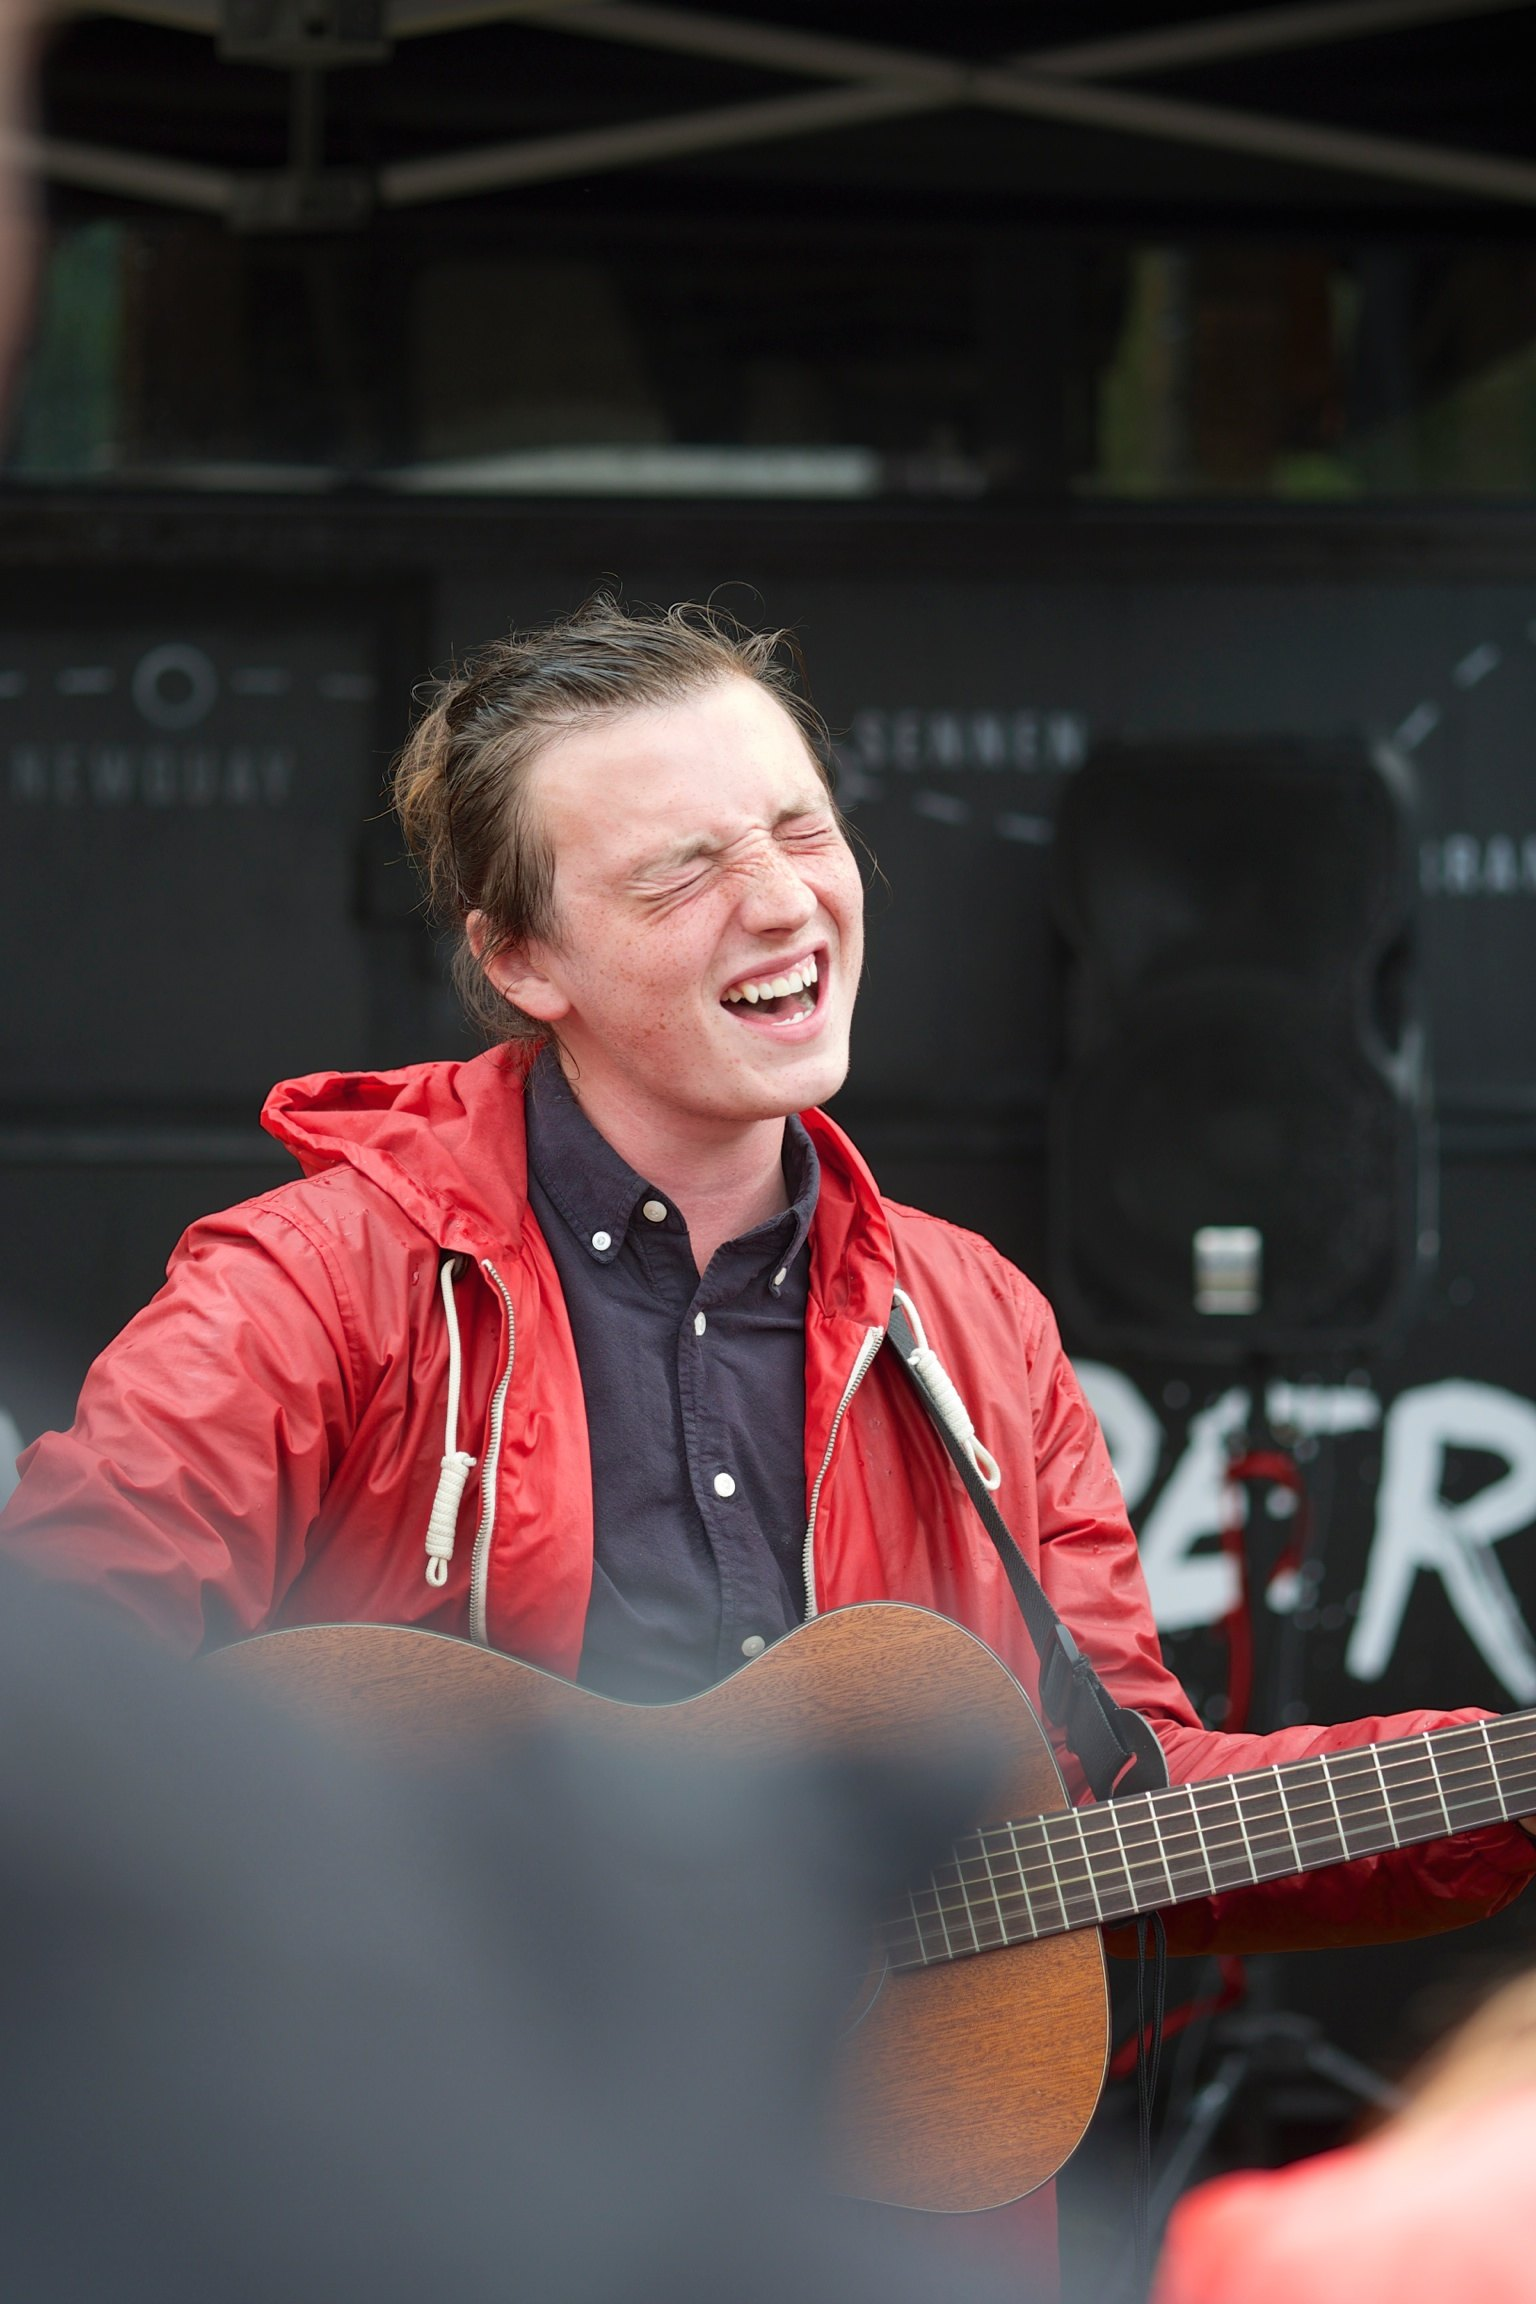 Lewis Watson outside the O'Neill bus at Somersault Festival 15